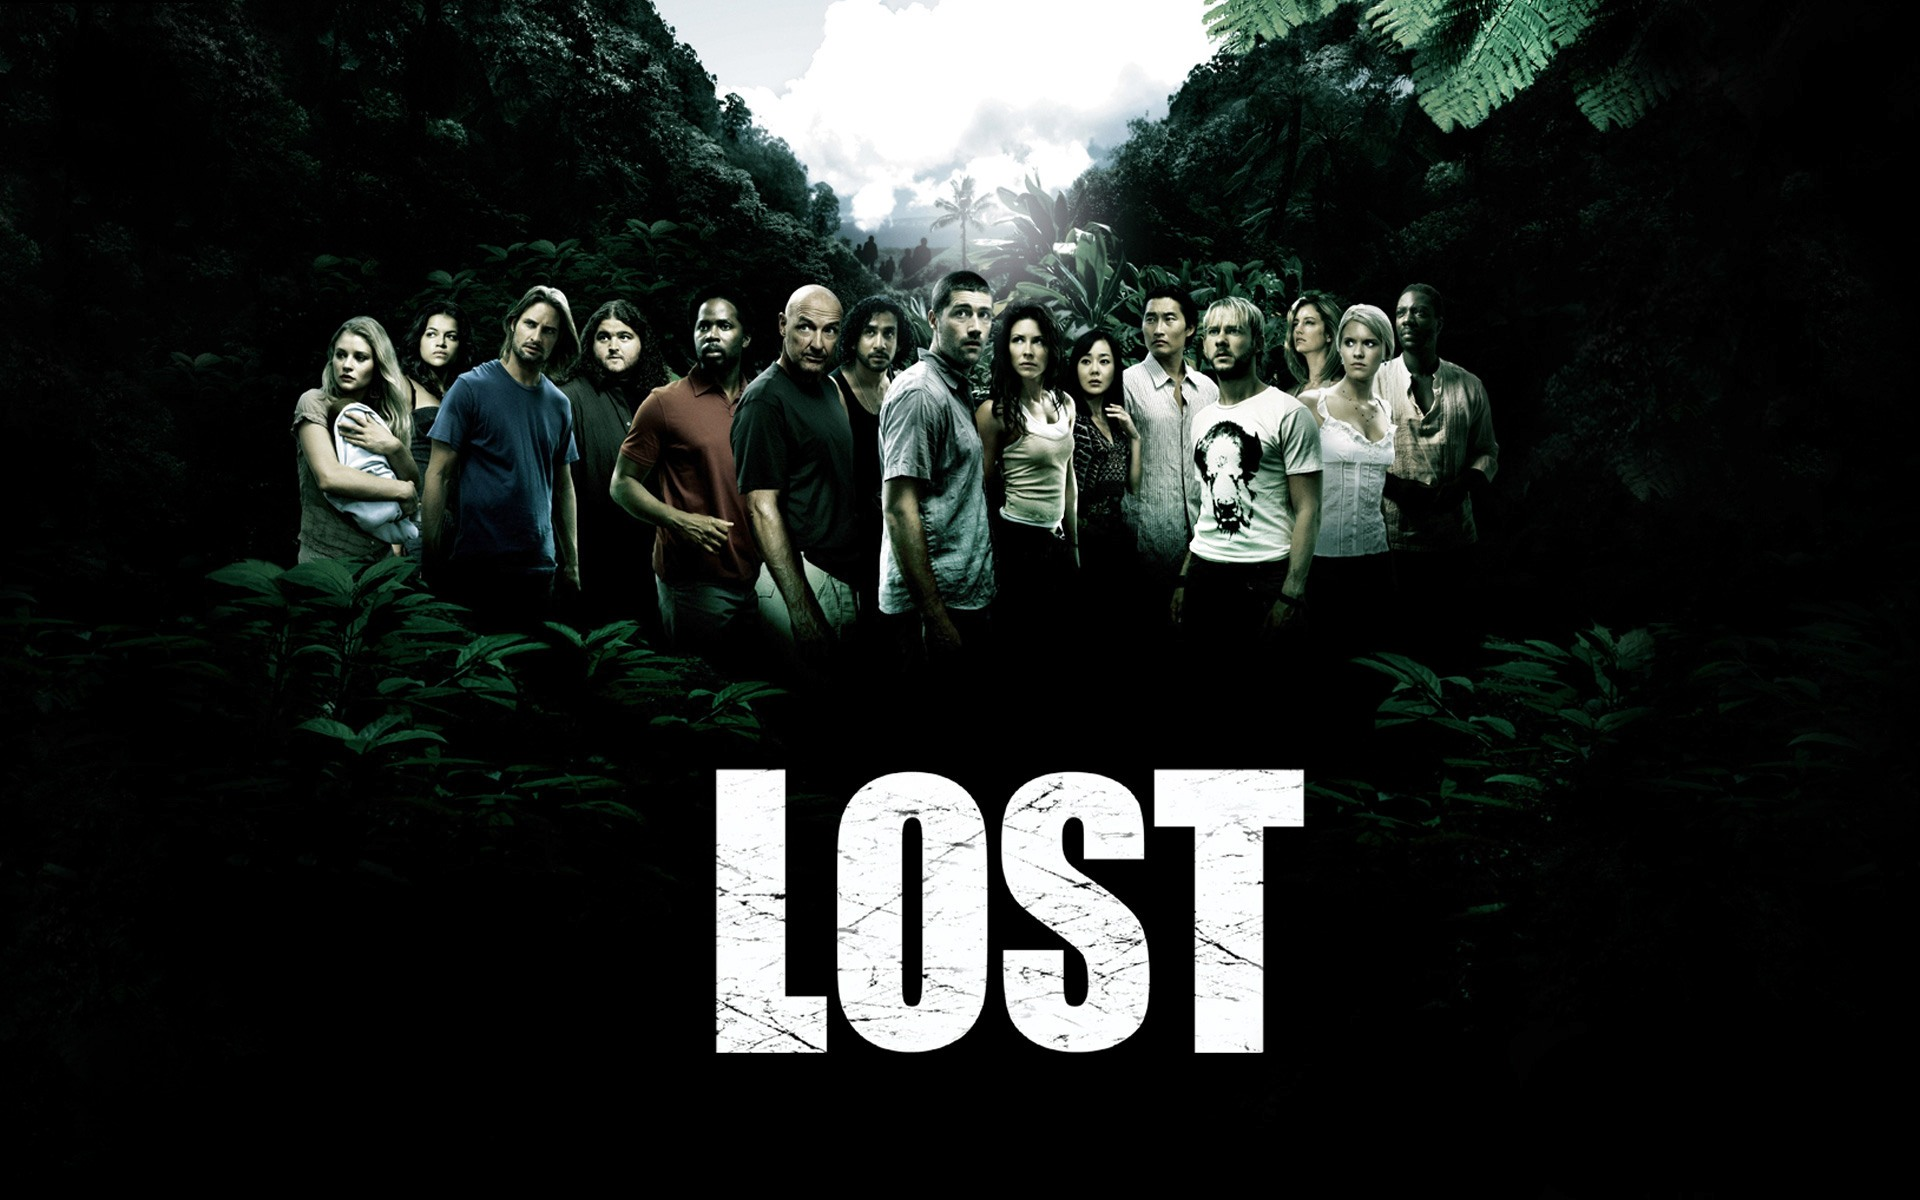 lost tv series - wallpaper, high definition, high quality, widescreen